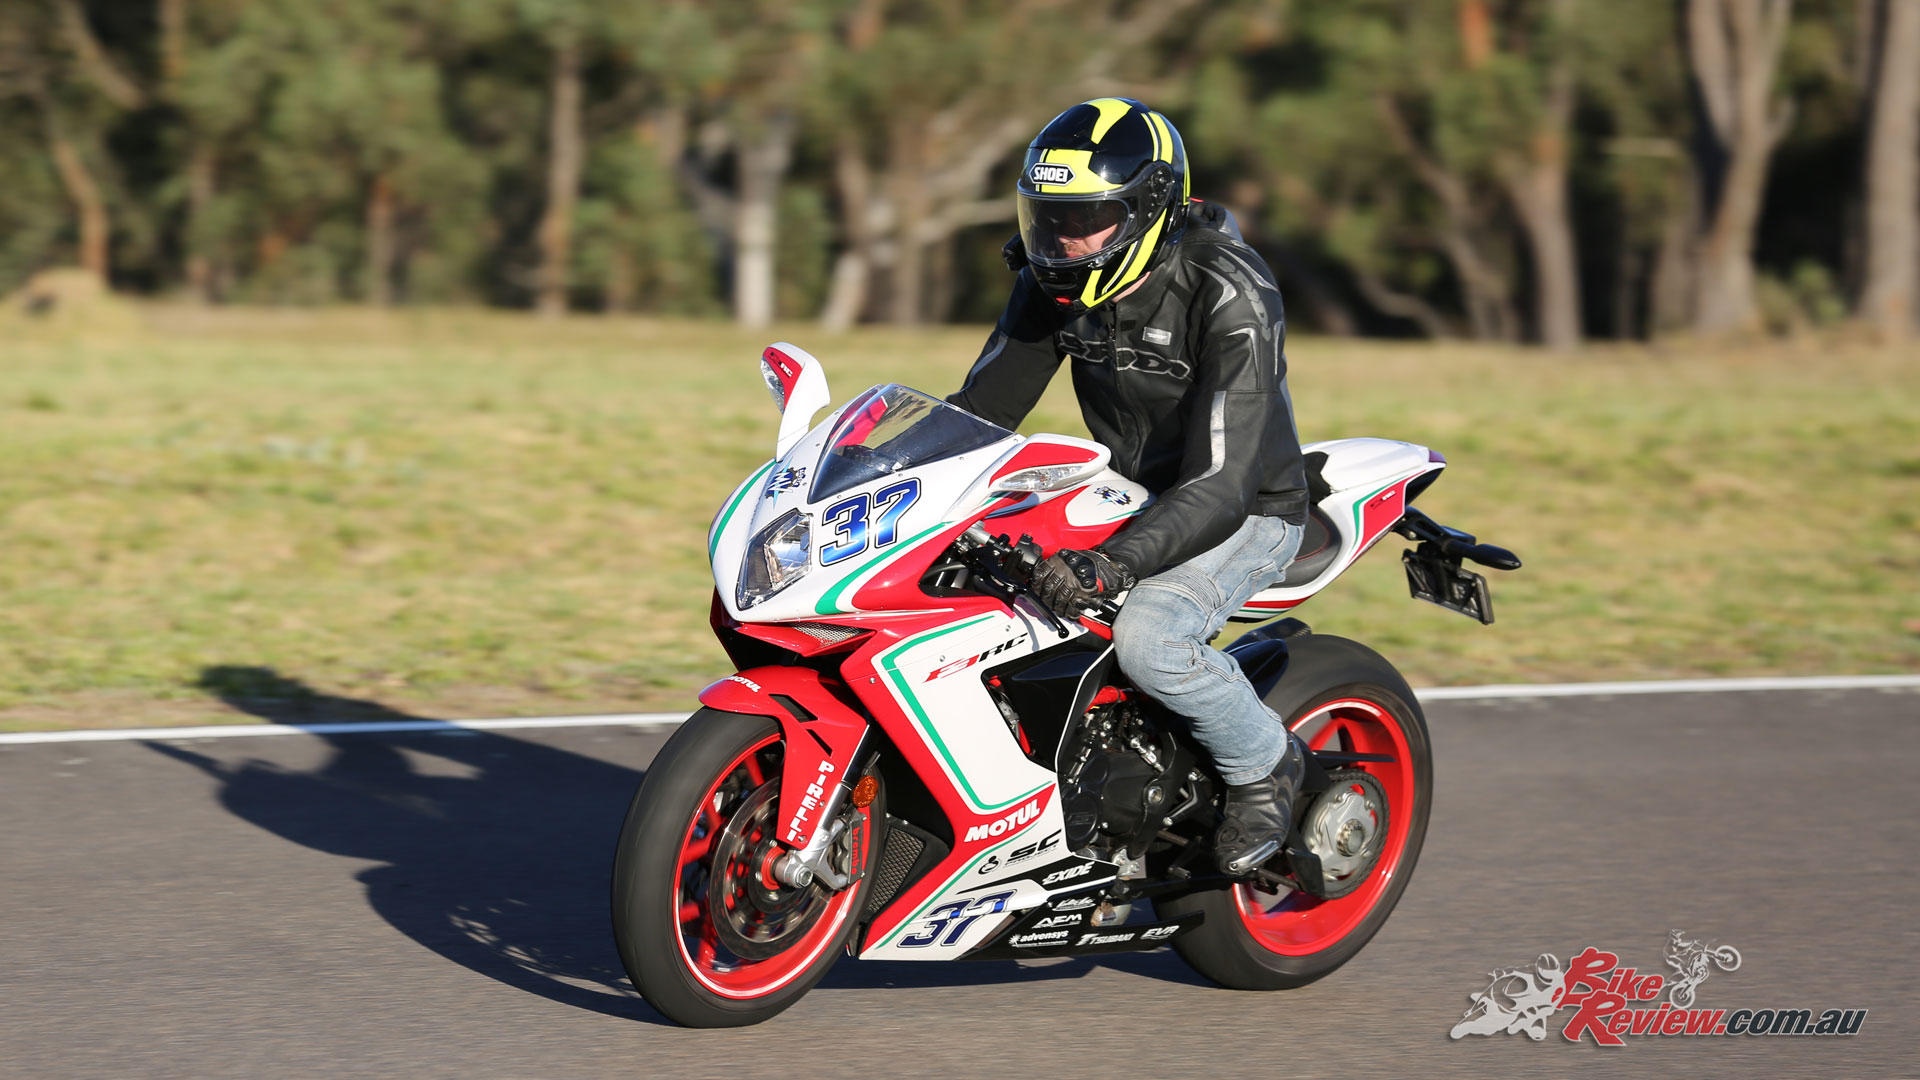 Jumping on the MV Agusta F3 675 RC reveals an amazing piece of machinery...